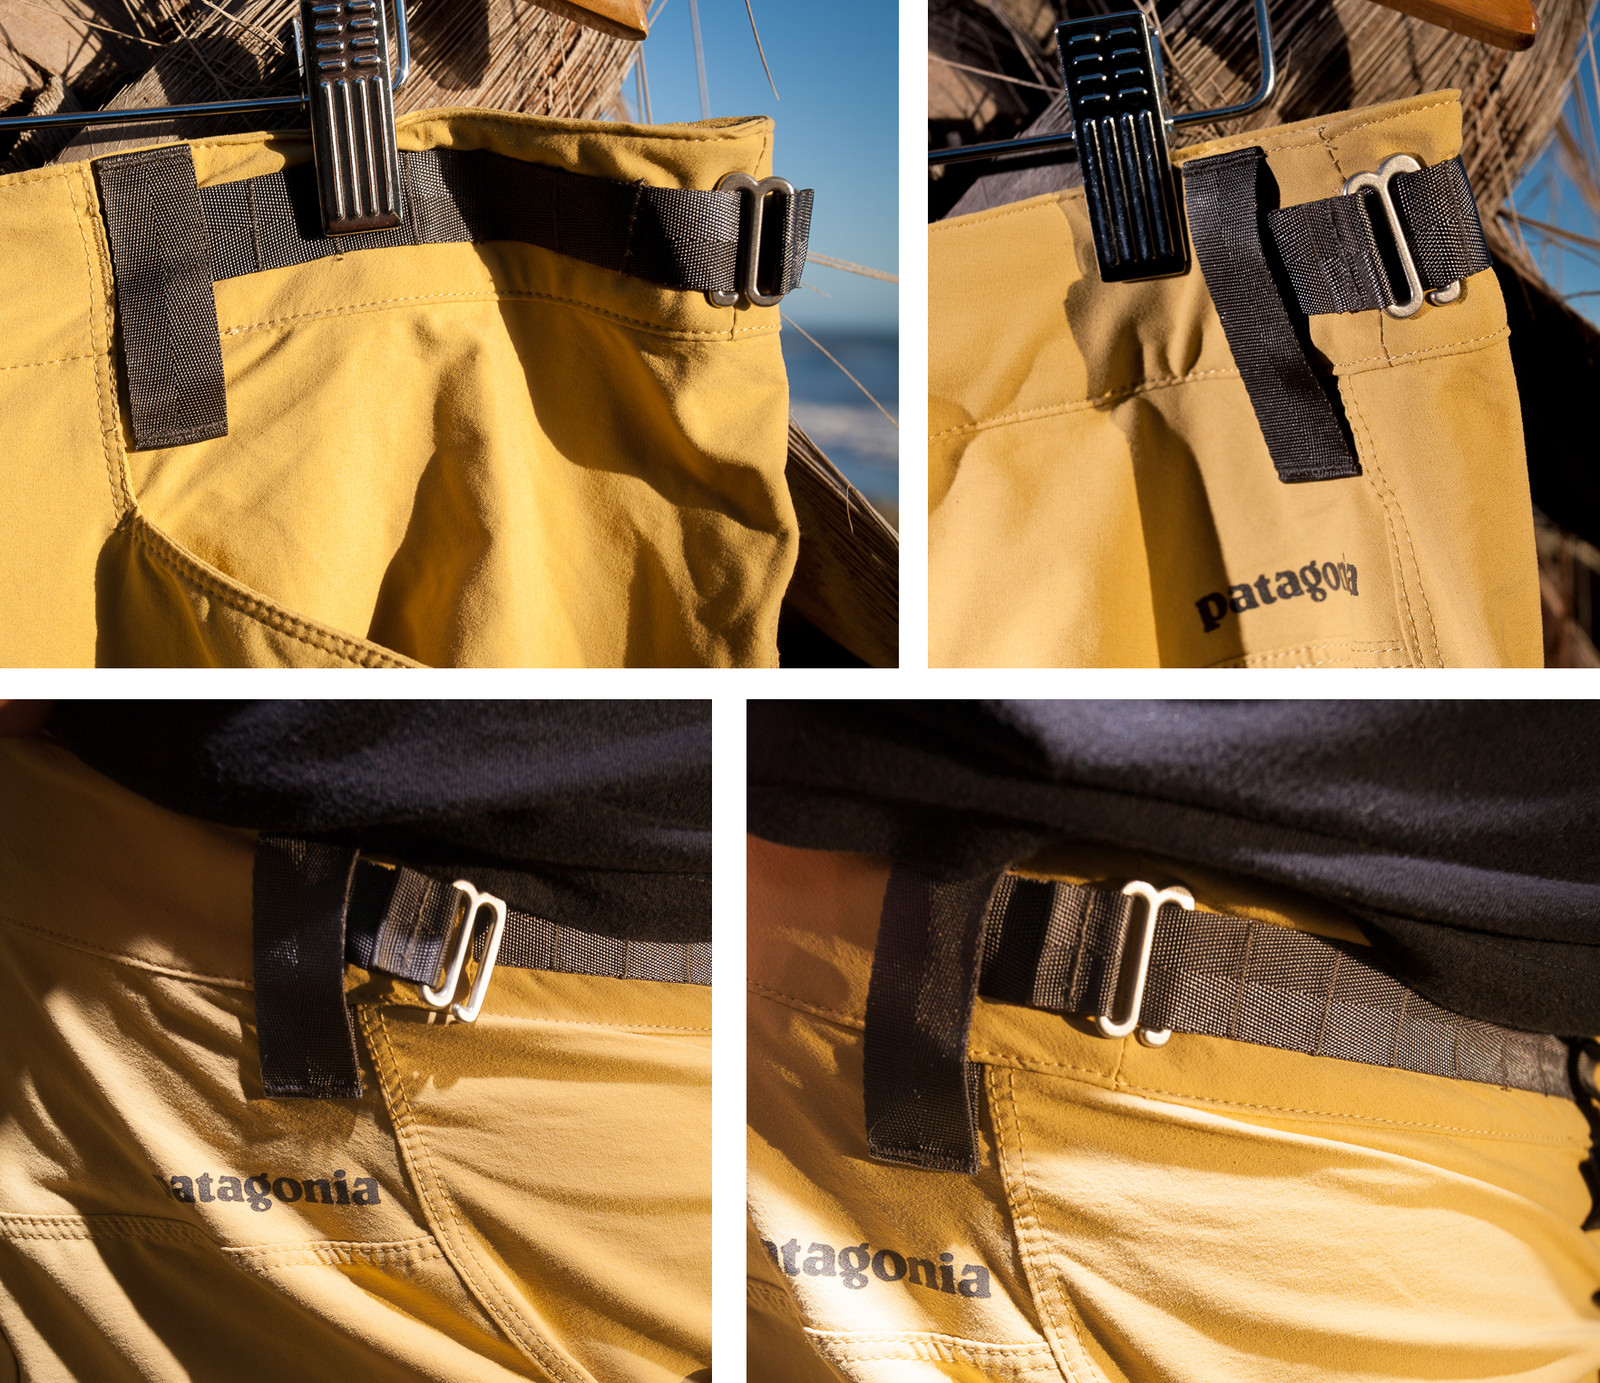 First Look  Patagonia MTB Apparel - Mountain Bikes Feature Stories ... 2432194a0